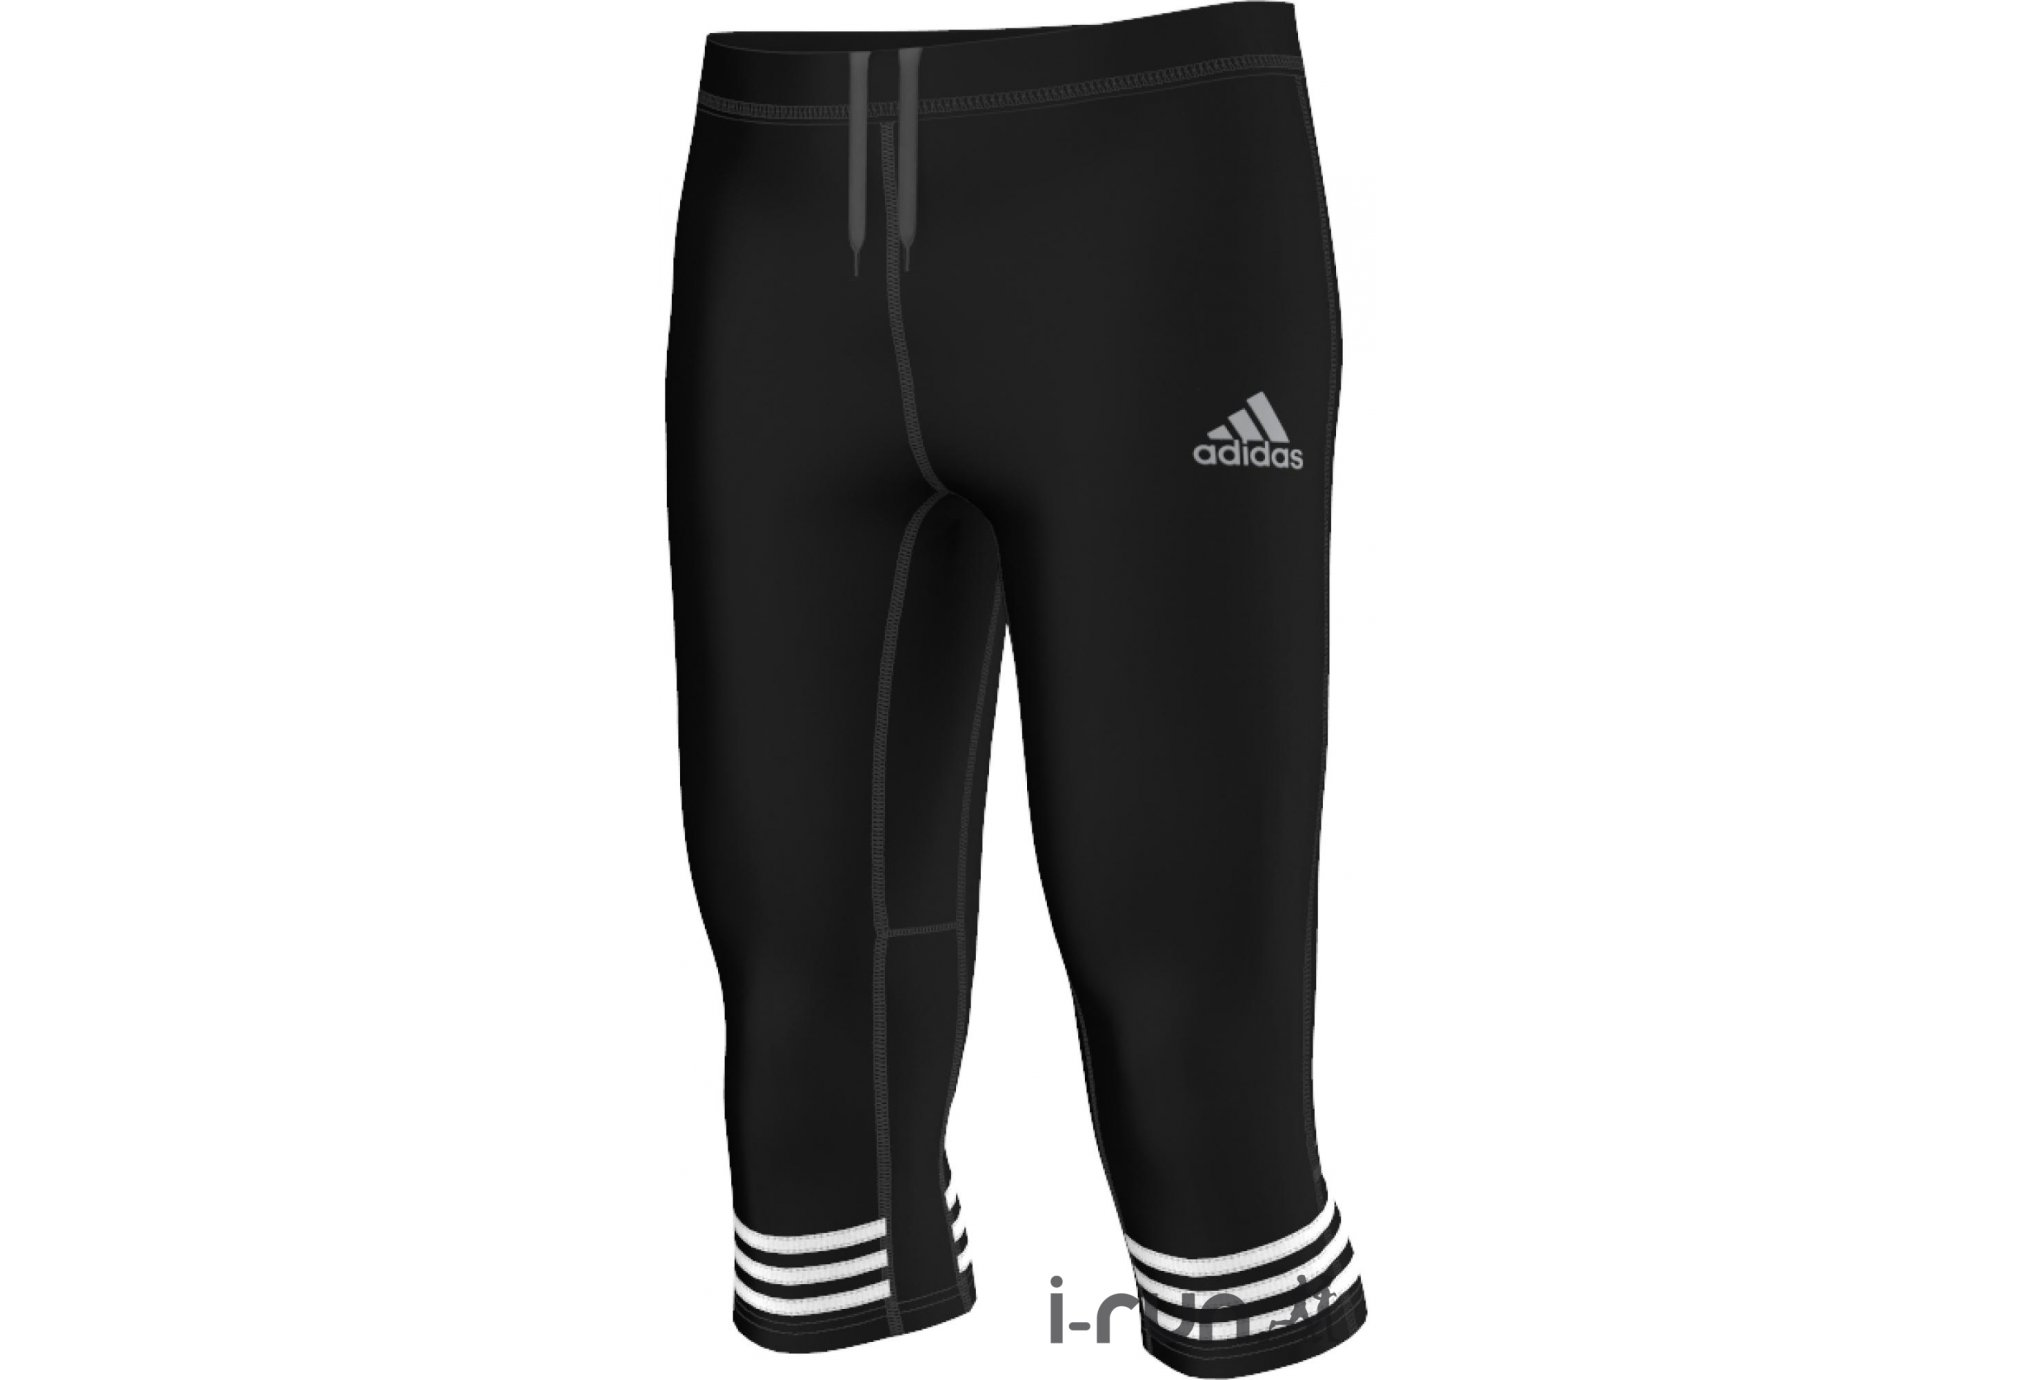 Adidas Collant 3/4 response m vêtement running homme